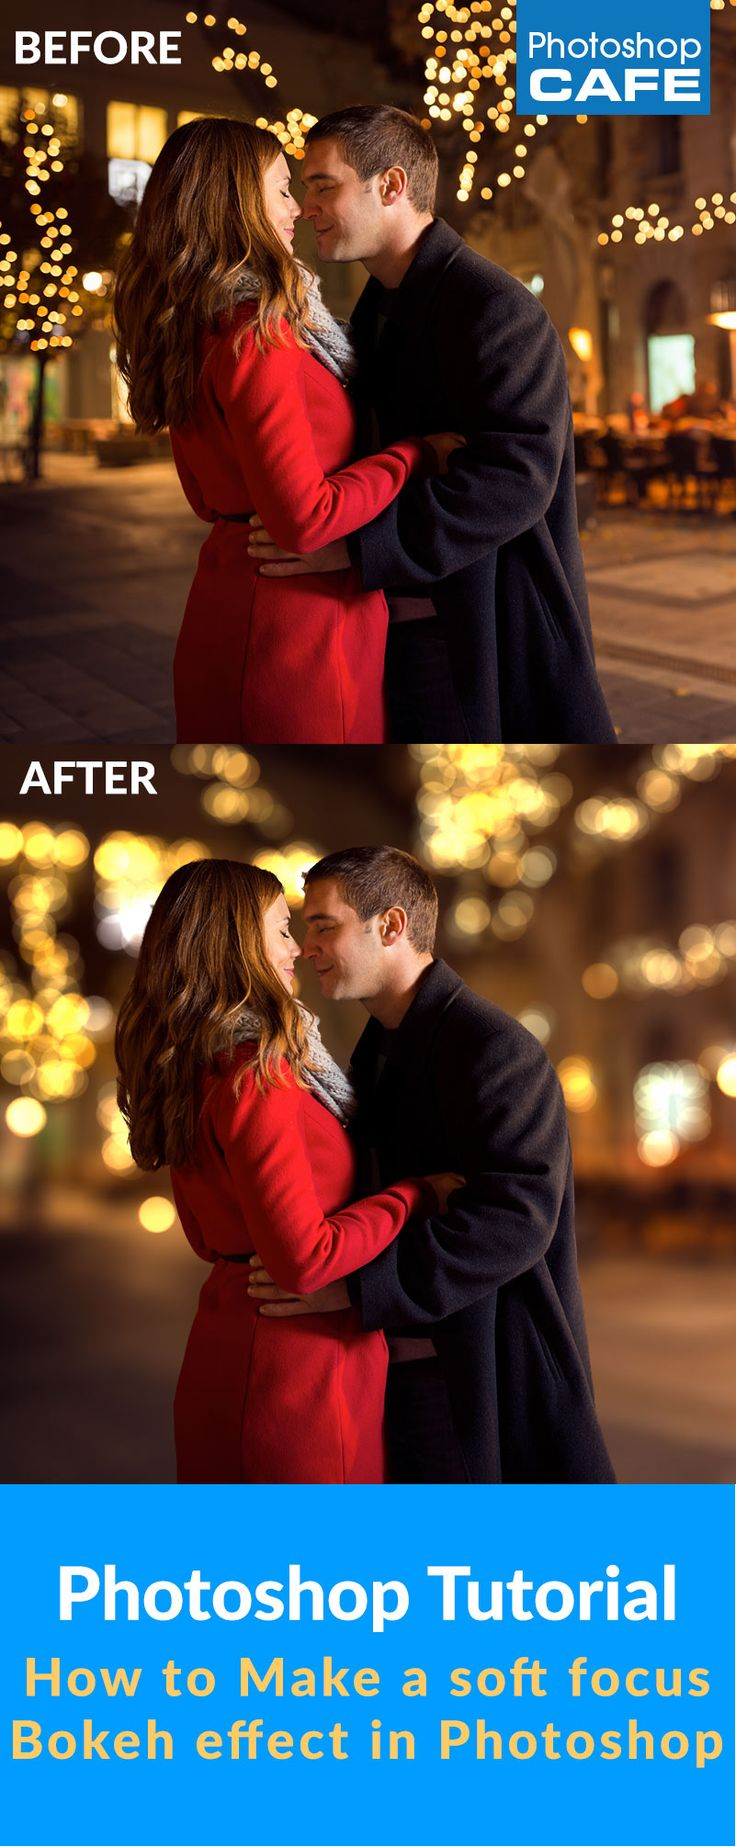 How to make a photorealistic lens bokeh effect in Photoshop. Don't just blur the… #Photoshop @English4Matura